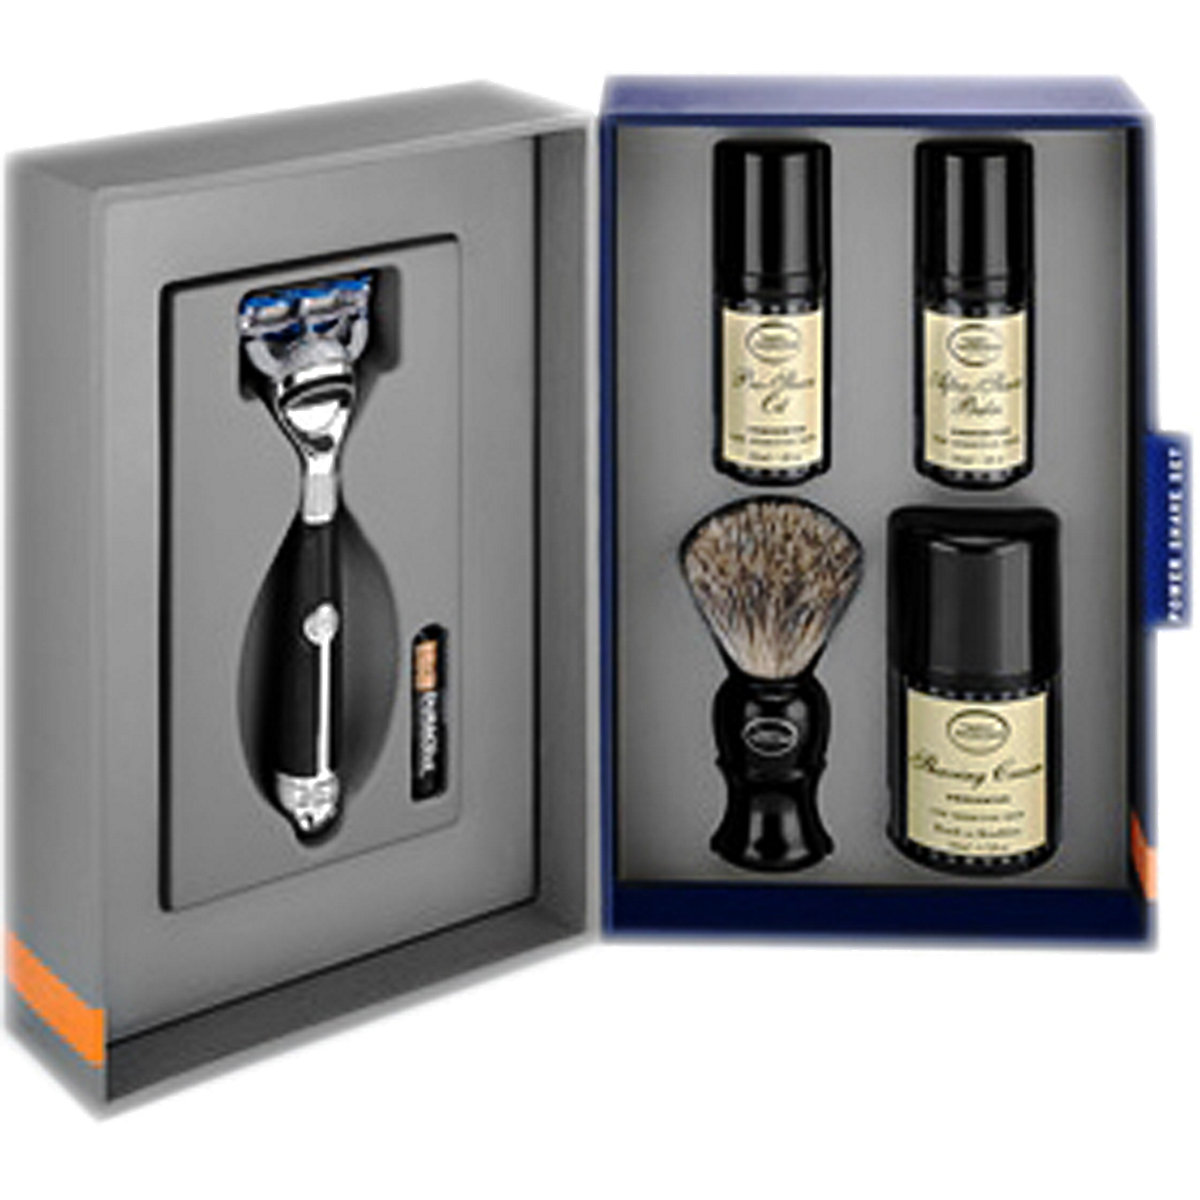 The Art Of Shaving power Shave Set buy HERE